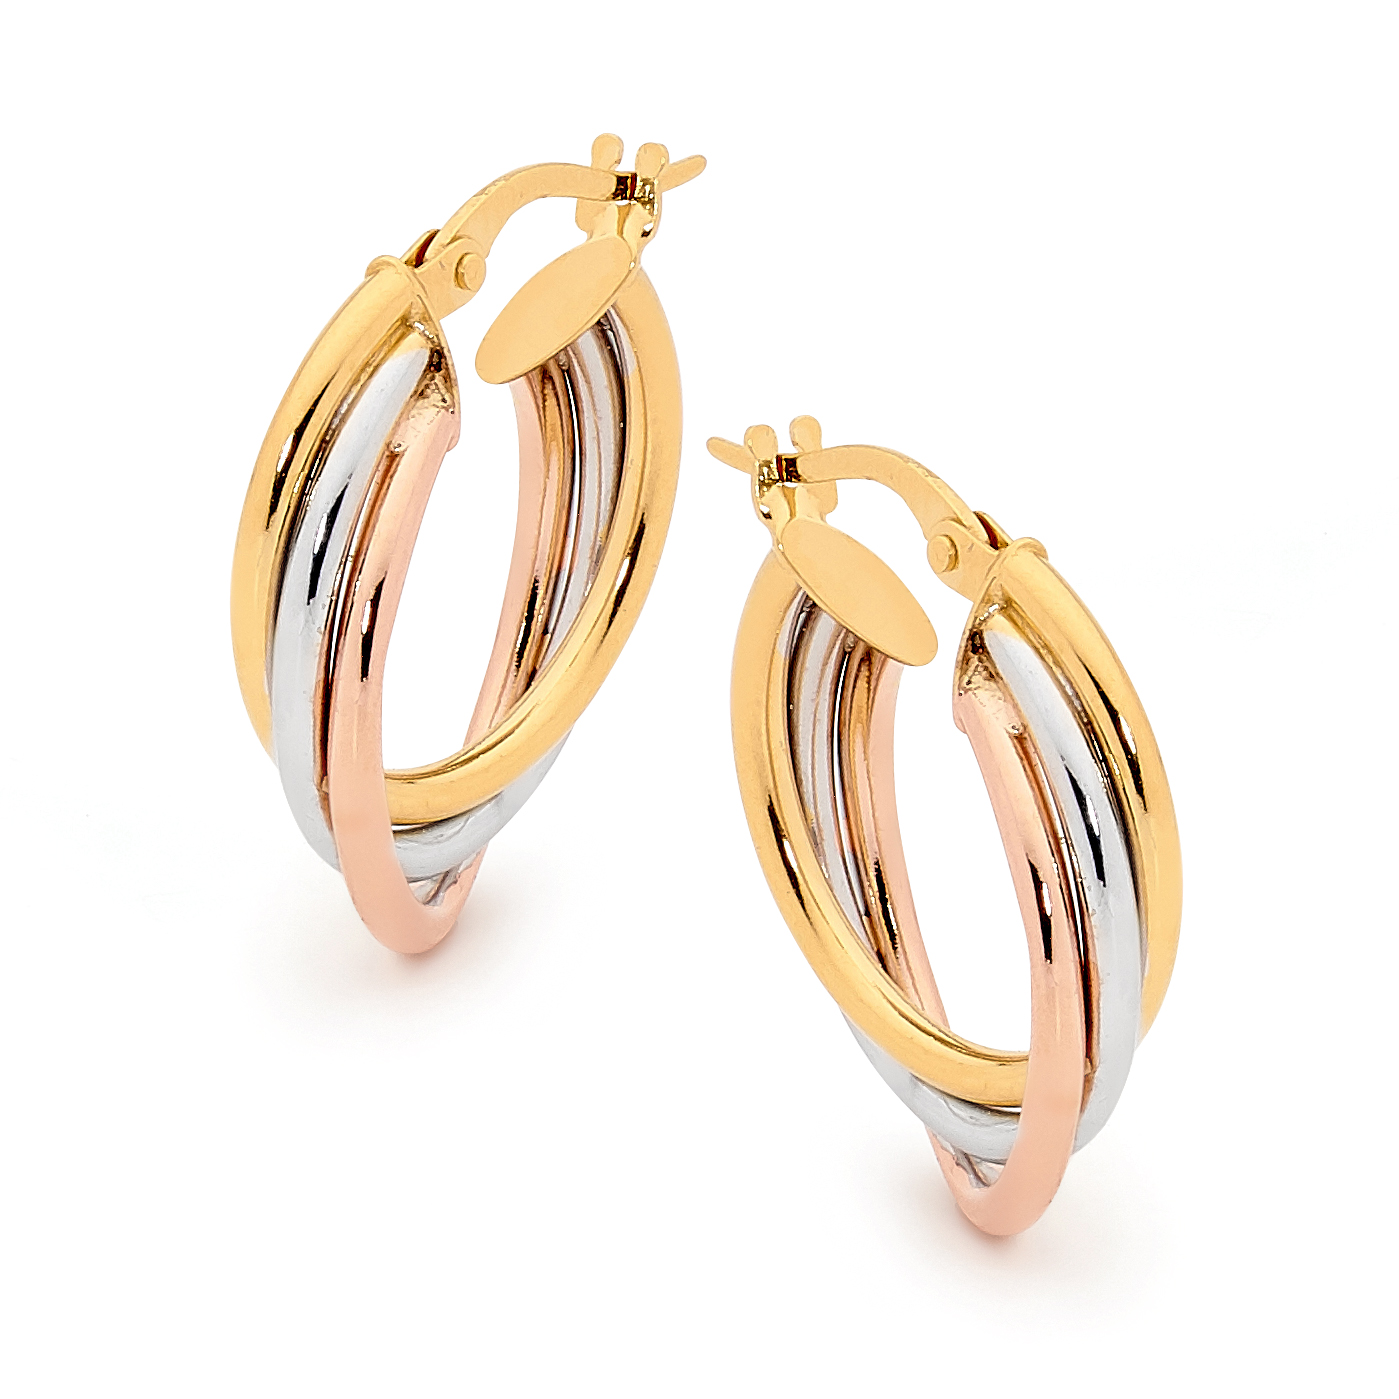 Gold Plated Triple Orbit Sterling Silver Hoop Earrings_image1